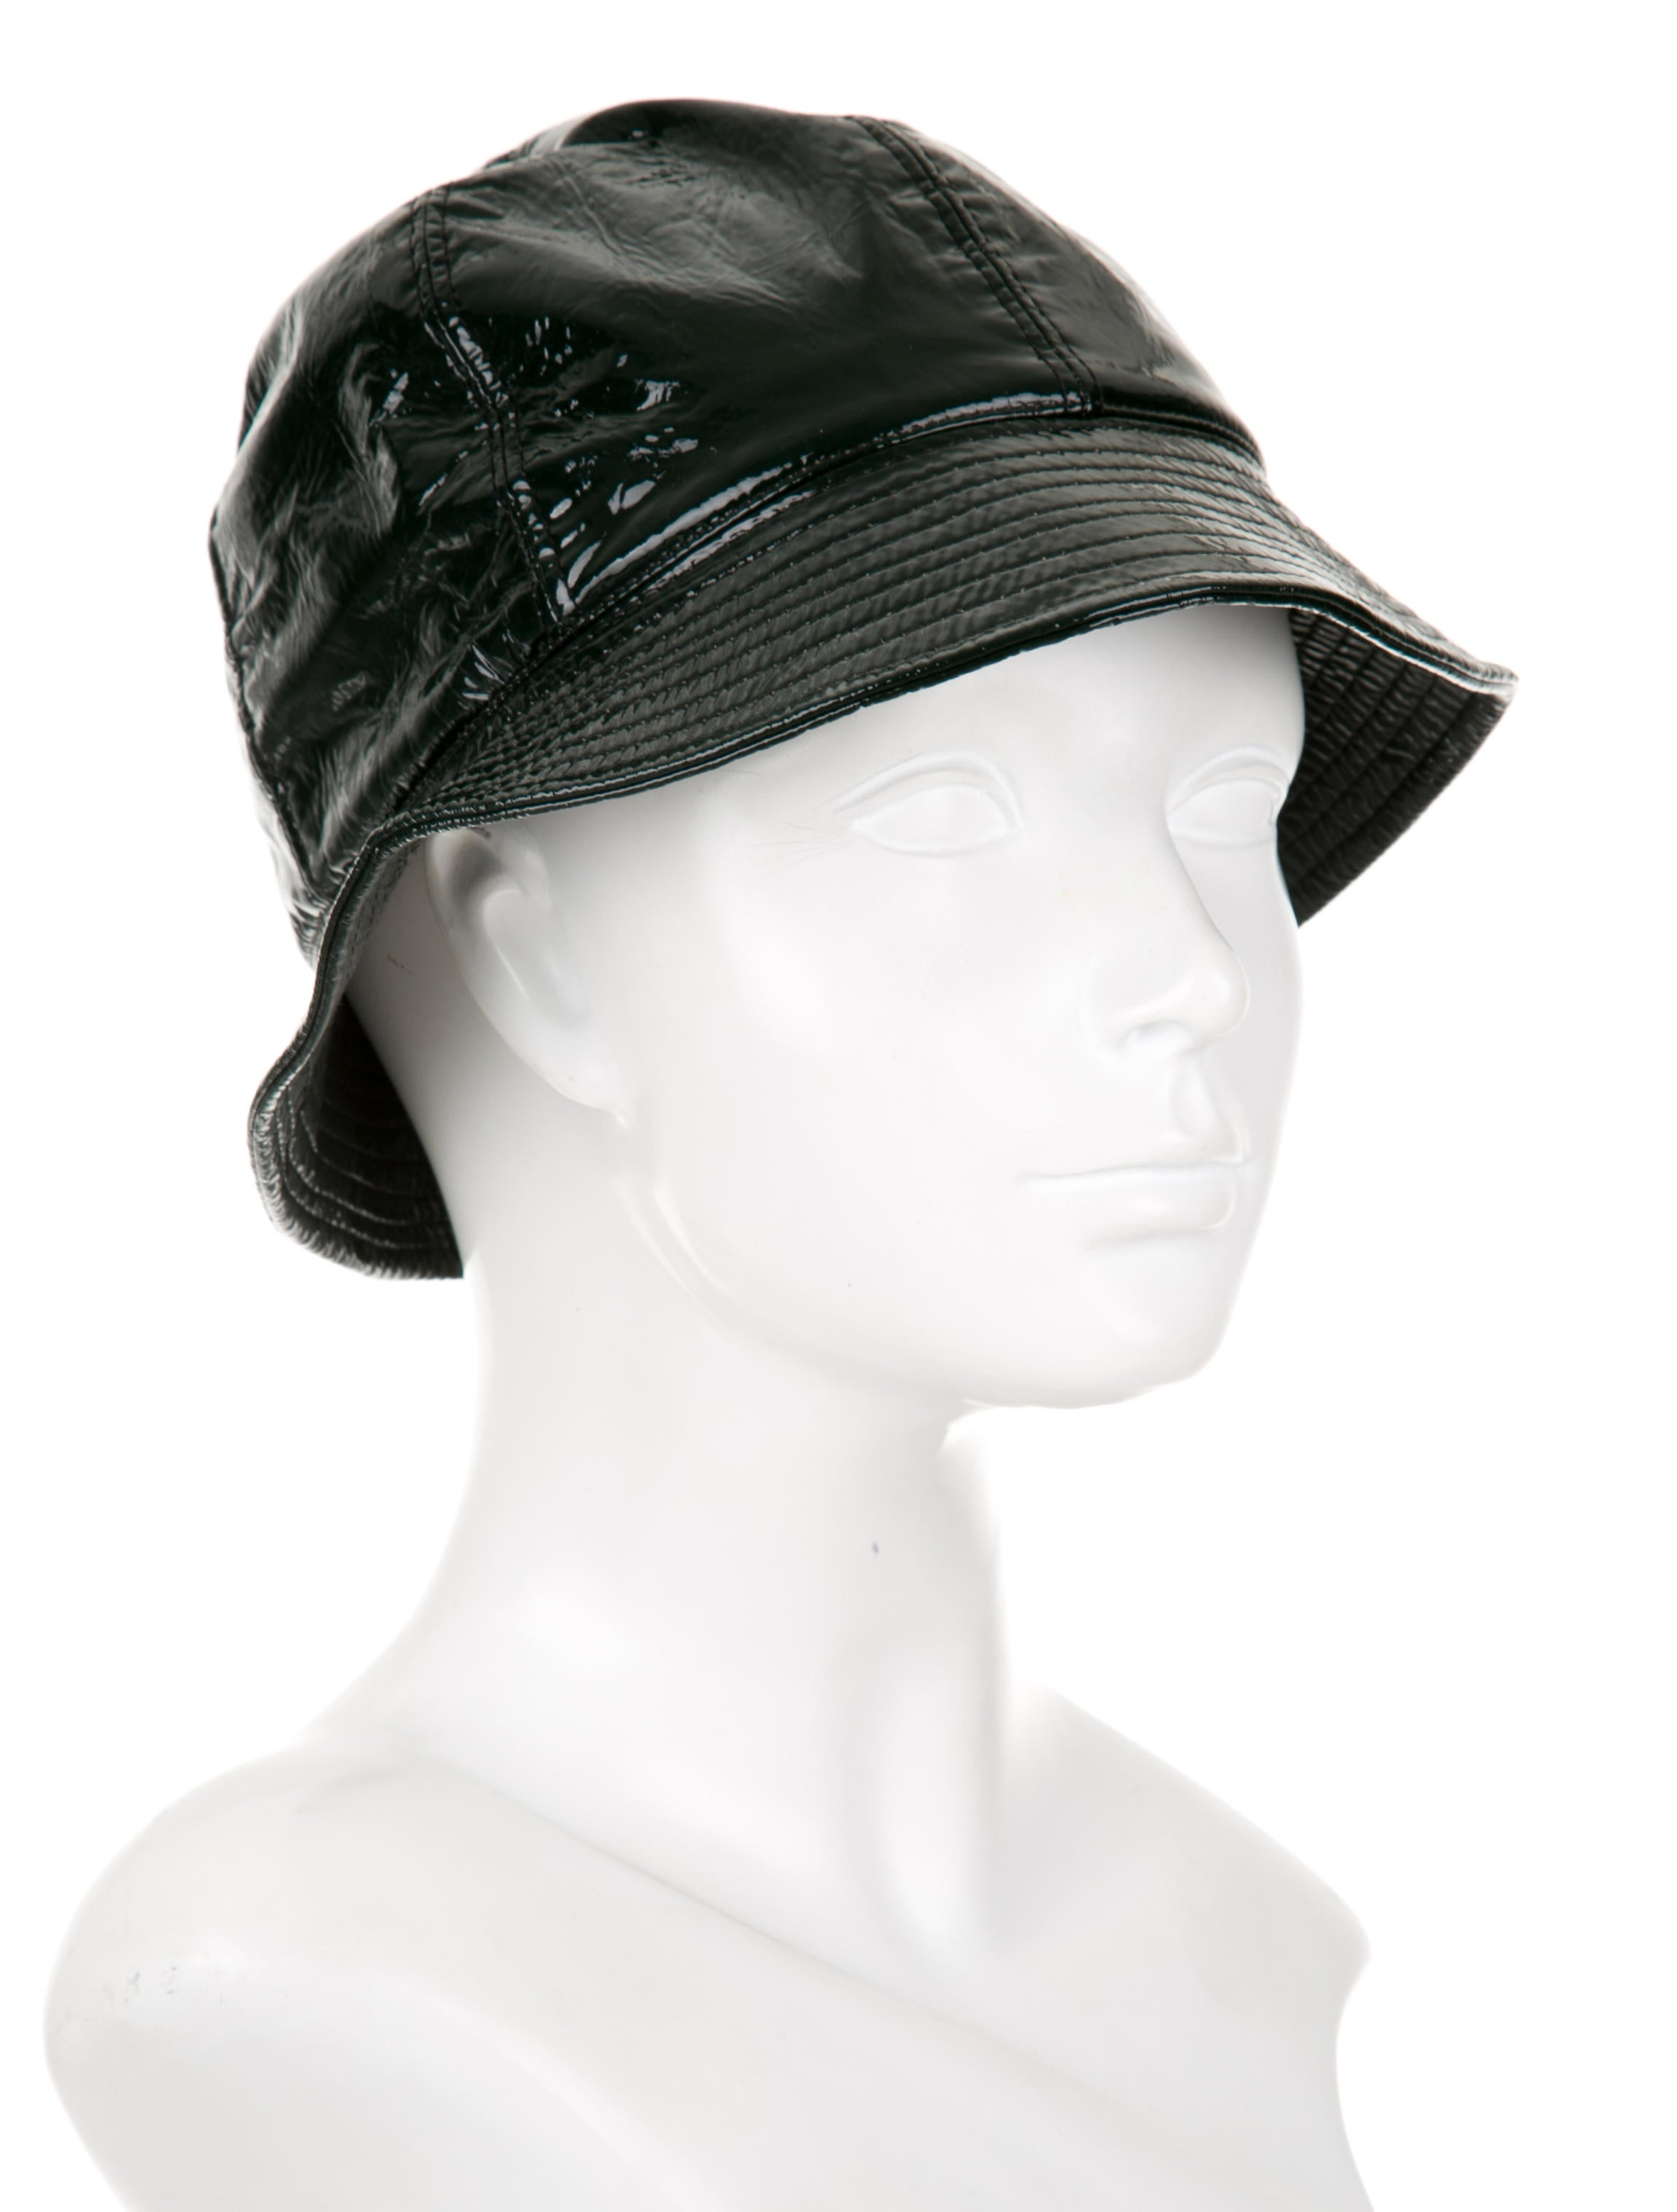 99cc98b476d Chanel bucket hat accessories cha the realreal jpg 2301x3035 Chanel hats  for men